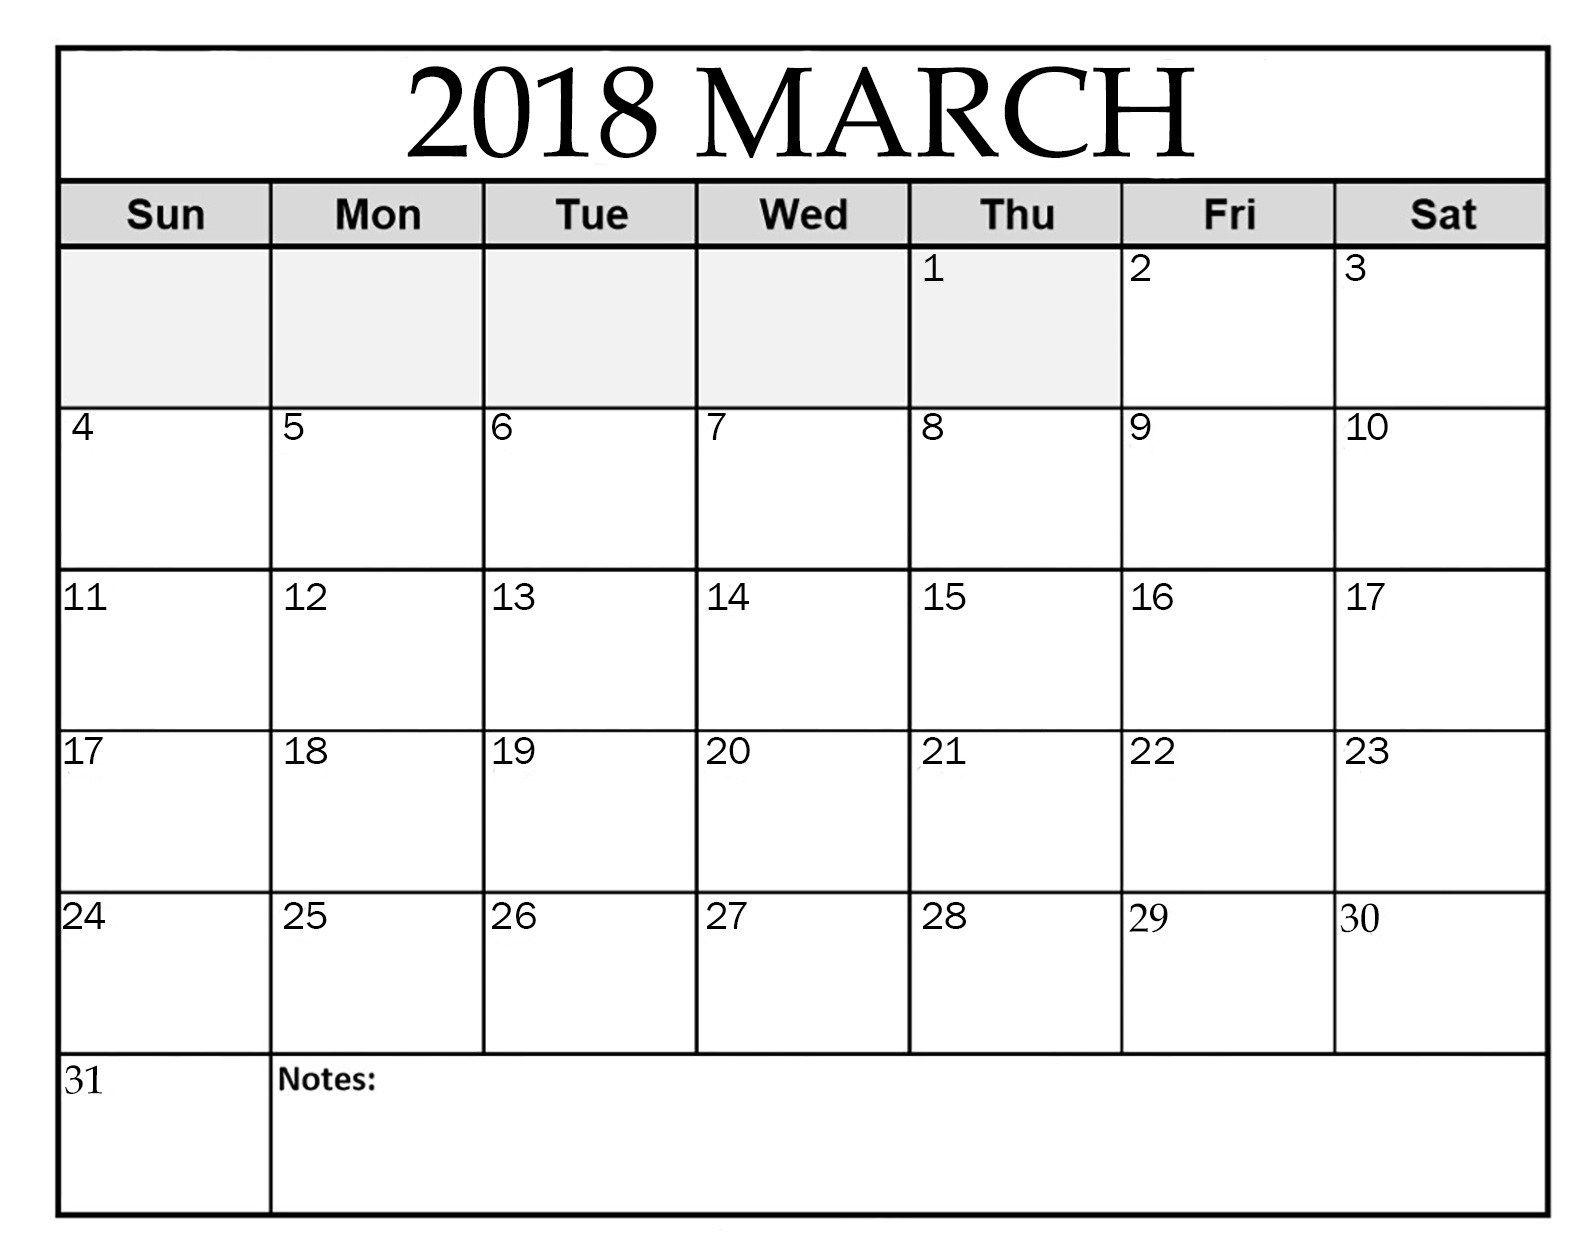 2018 march calendar template free download march 2018 calendar template pdf word excel https